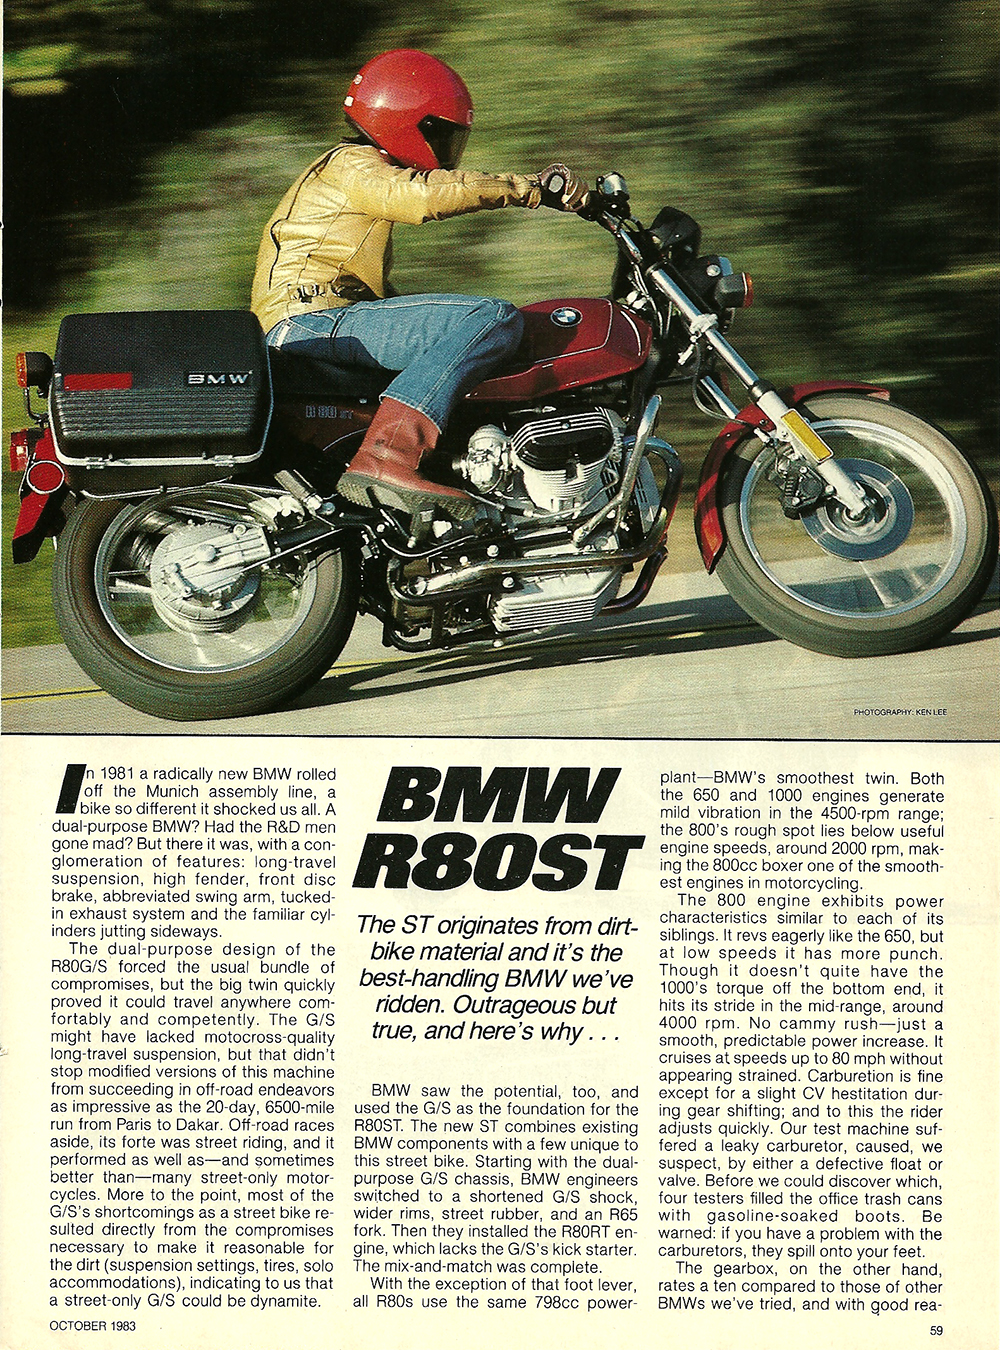 1983 BMW R80ST road test 1.jpg